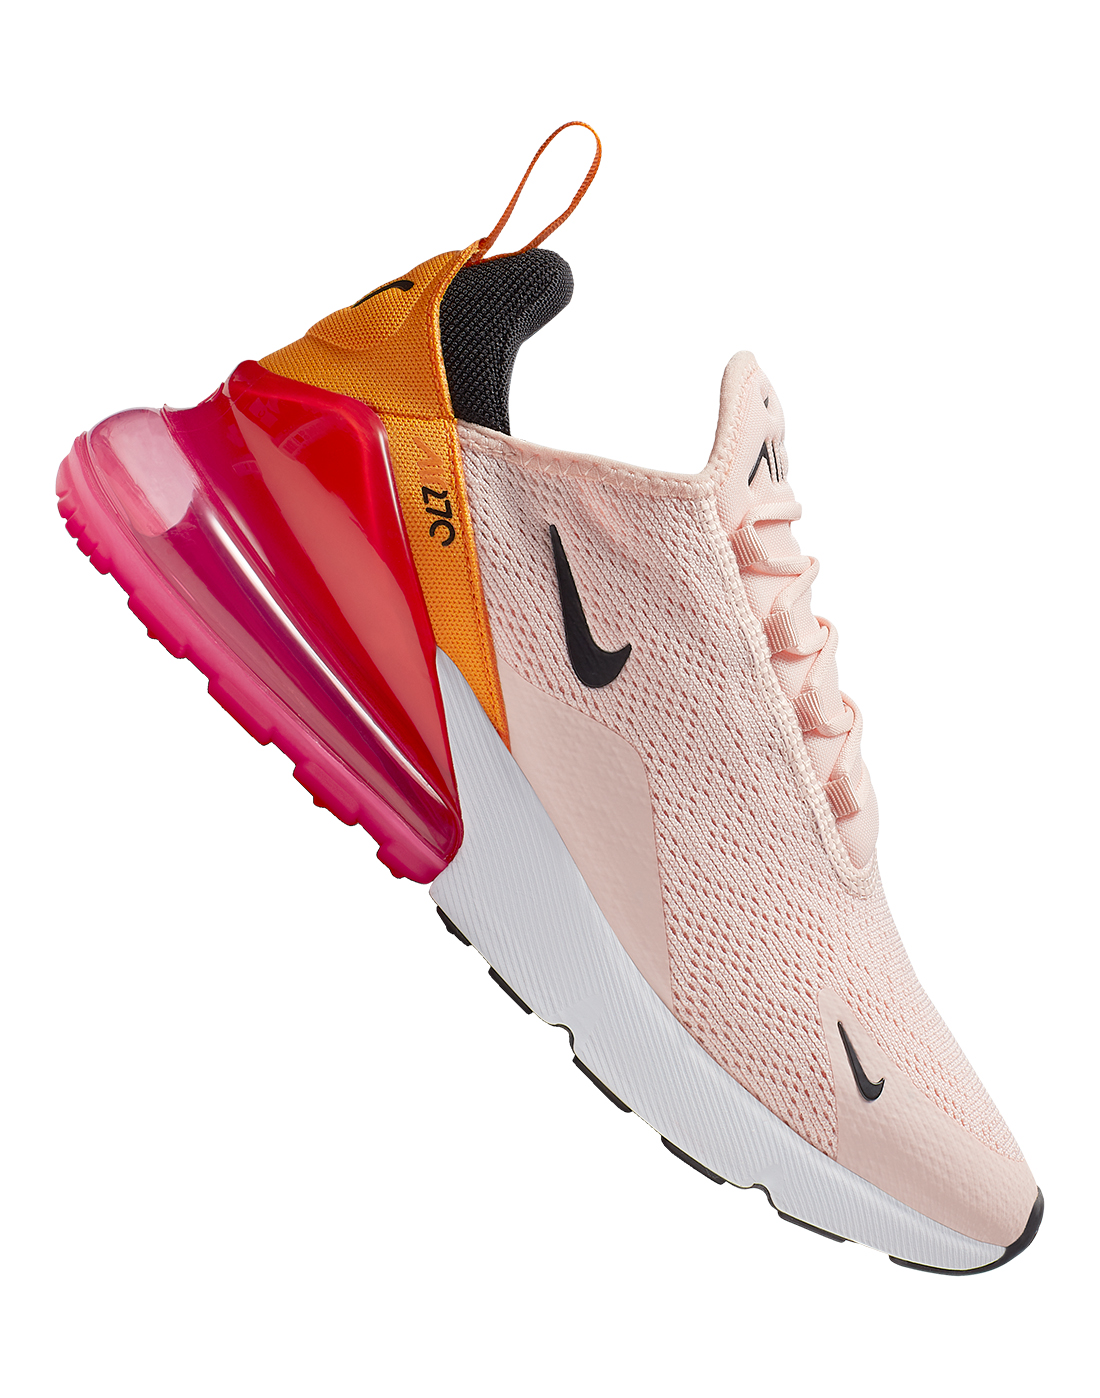 6bcee9ca47 Women's Pink & Peach Nike Air Max 270 | Life Style Sports